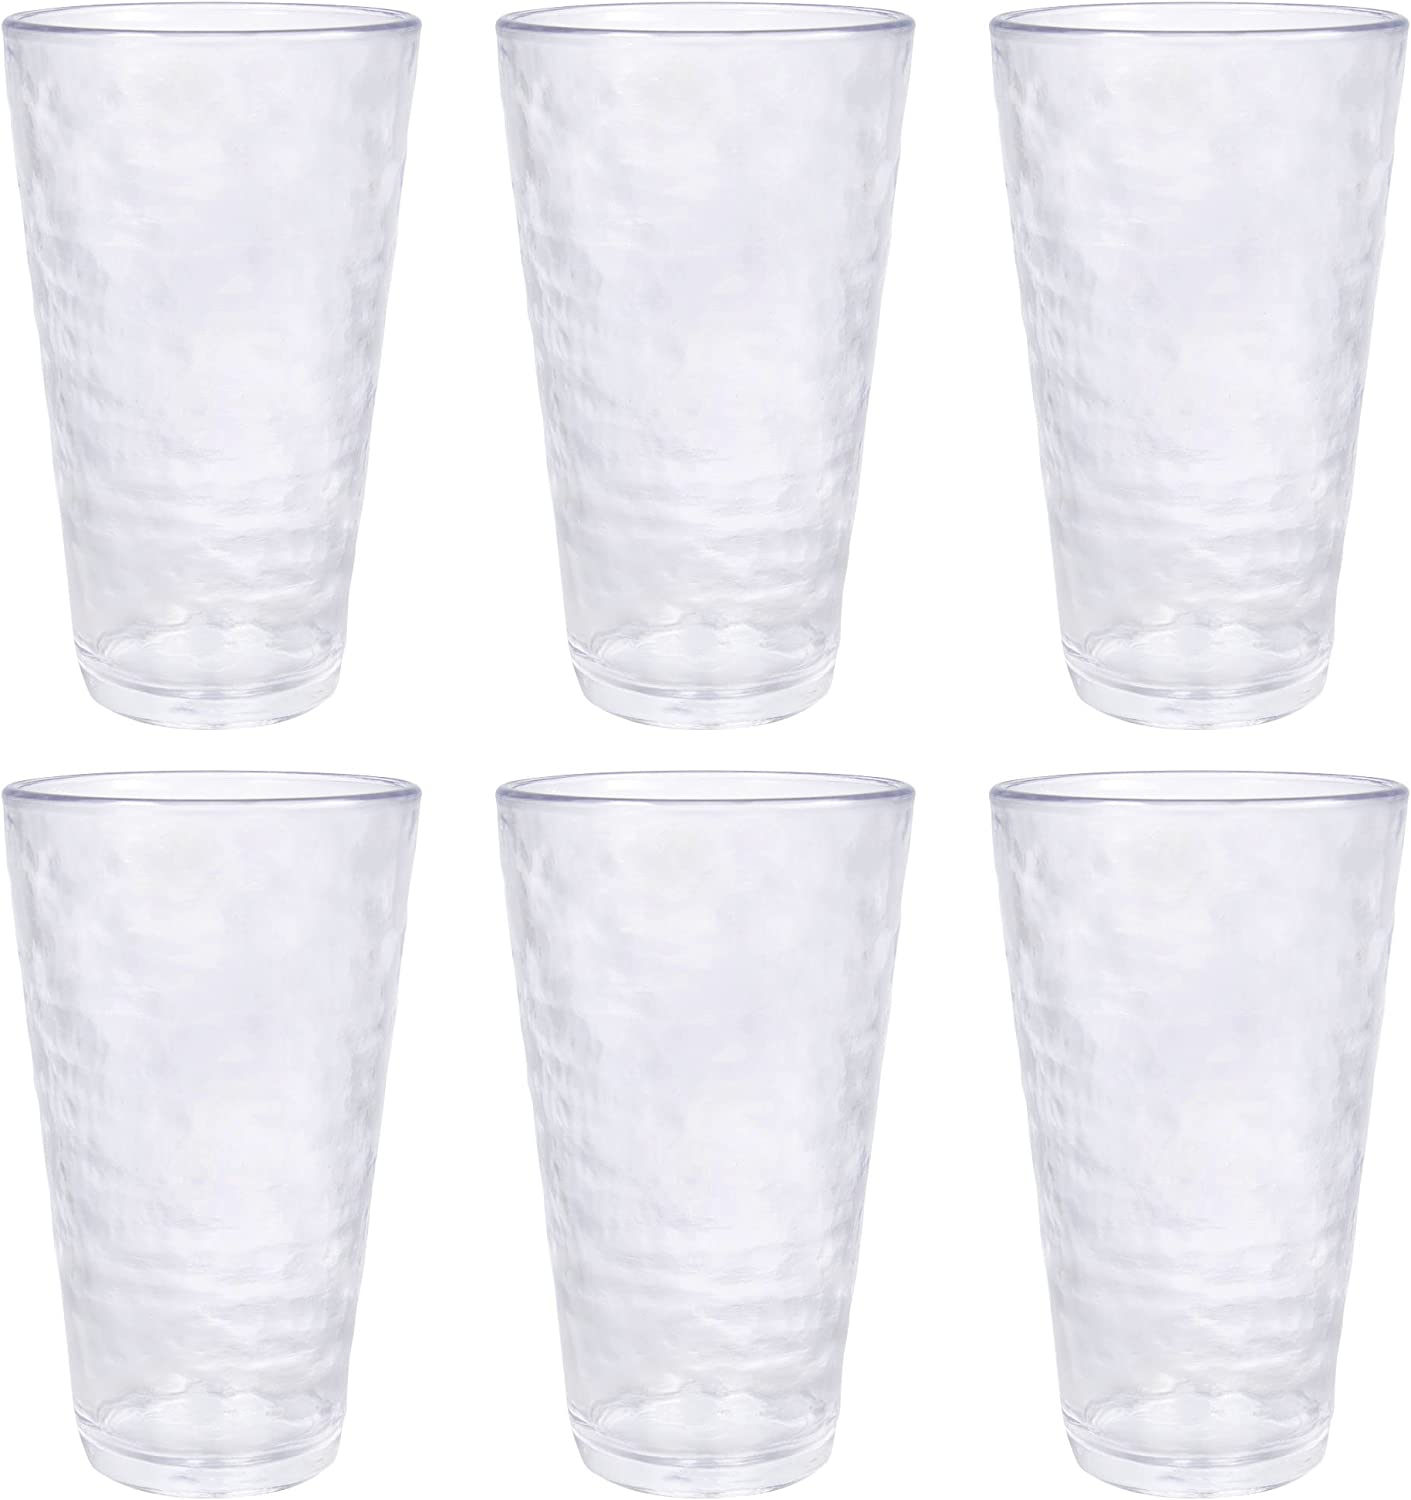 MARCUS HOME- Premium Acrylic Drinking Glass, Set of 6, 23.5 oz, BPA-Free, Clear